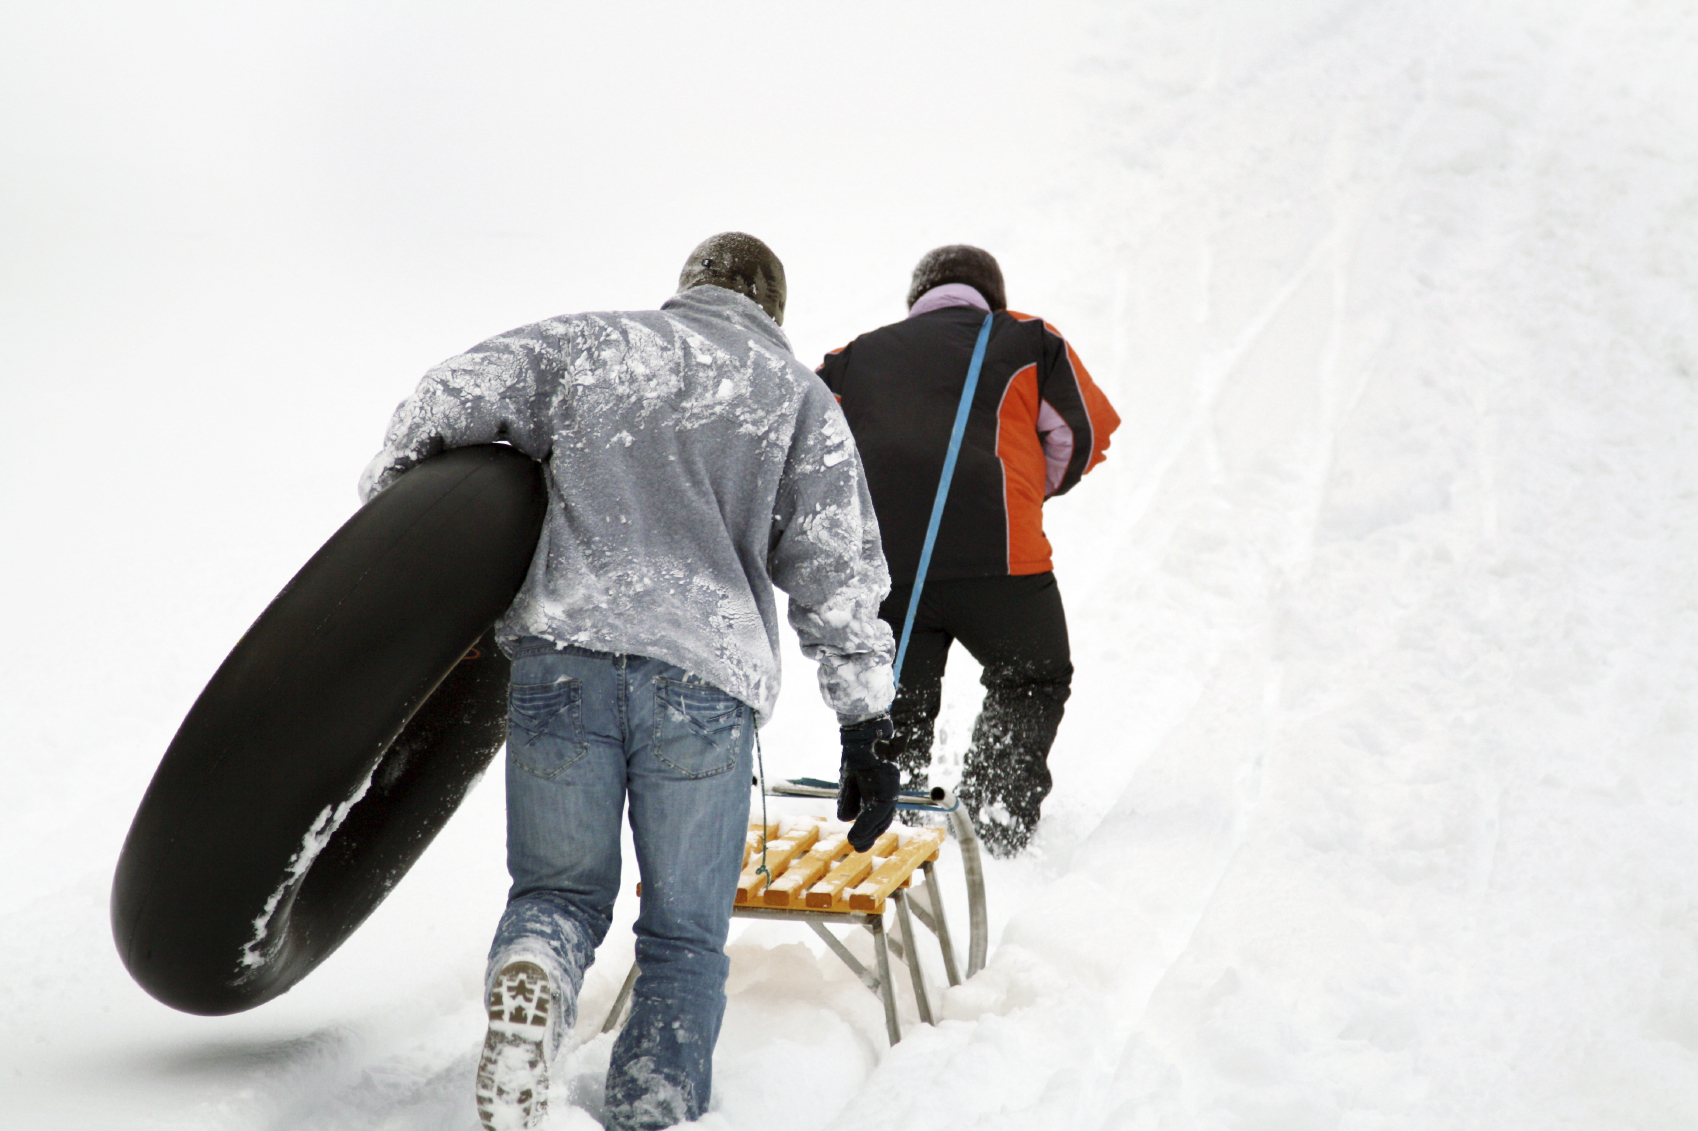 Sledding and Tobogganing